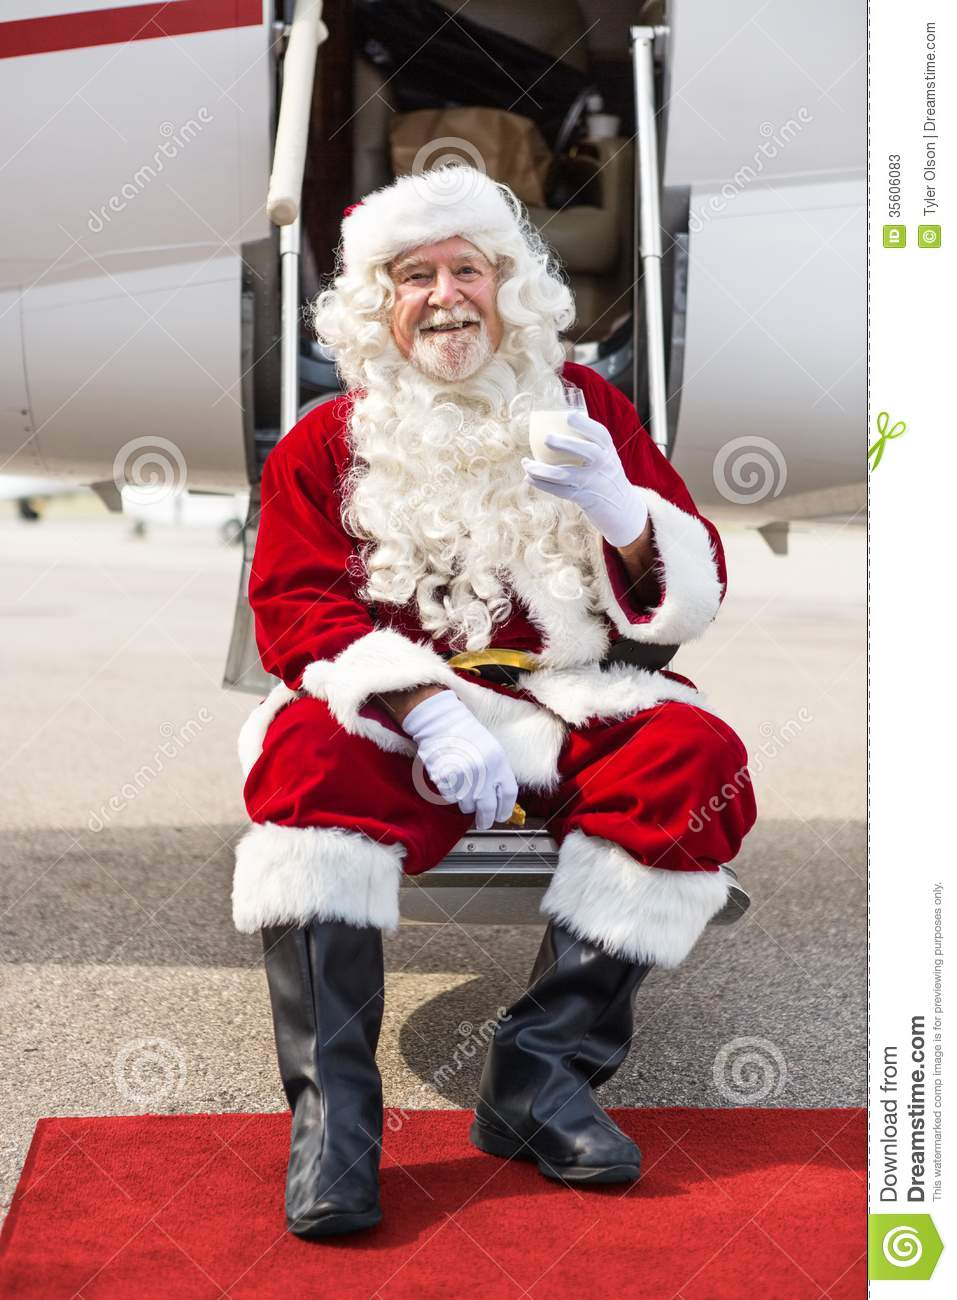 Santa Holding Milk Glass While Sitting On Private